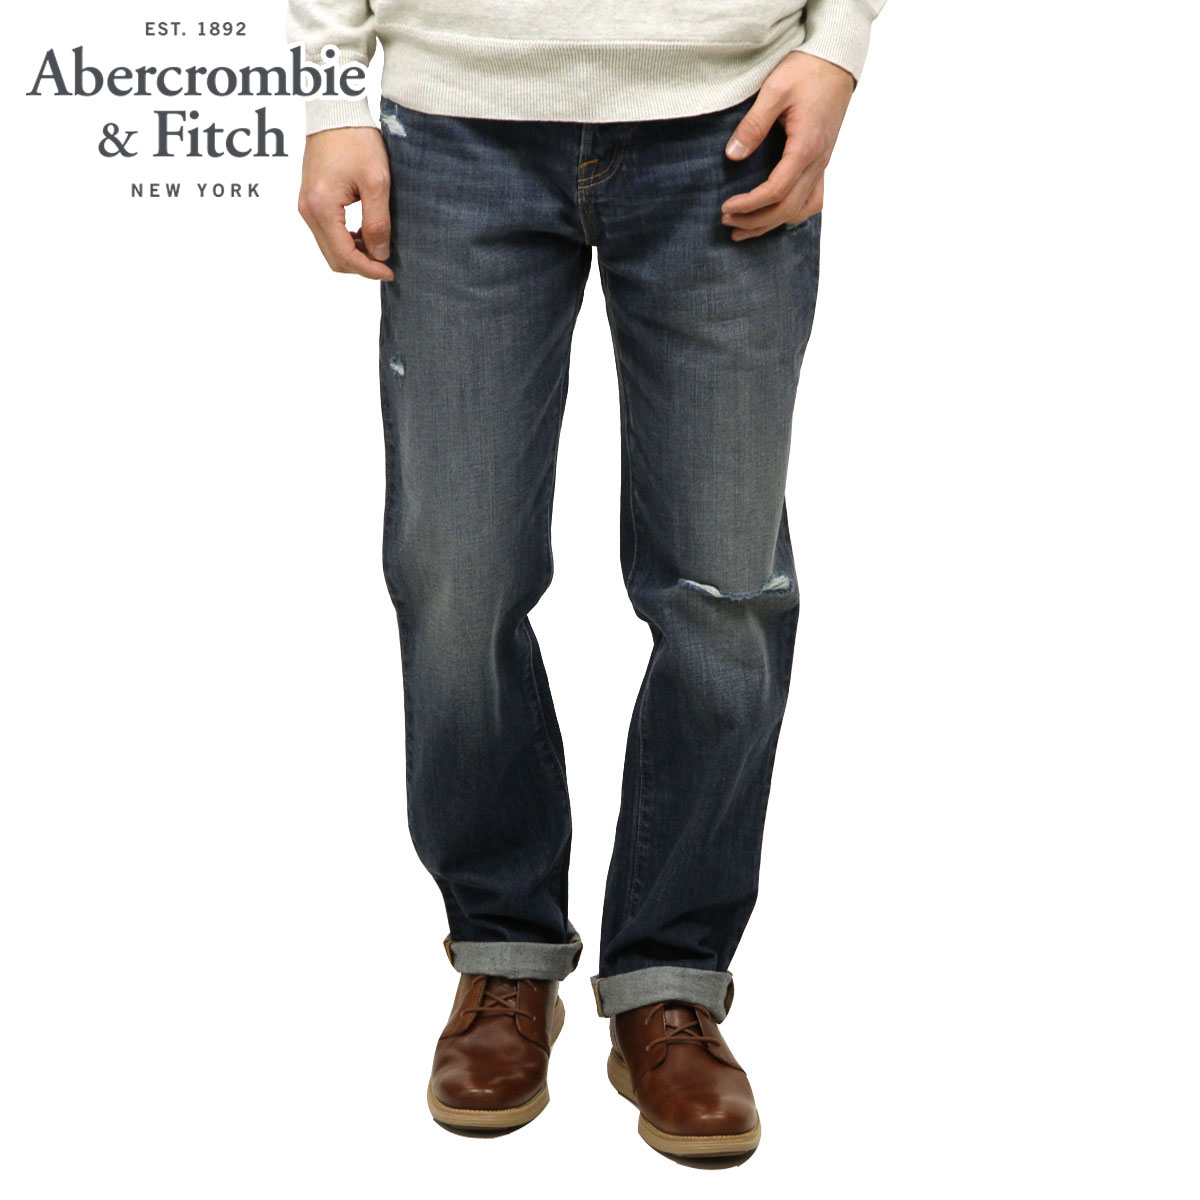 15%OFFセール 【販売期間 12/4 20:00~12/11 1:59】 アバクロ Abercrombie&Fitch 正規品 メンズ ジーンズ A&F Classic Straight Button Fly Jeans 131-318-0358-027 D00S20